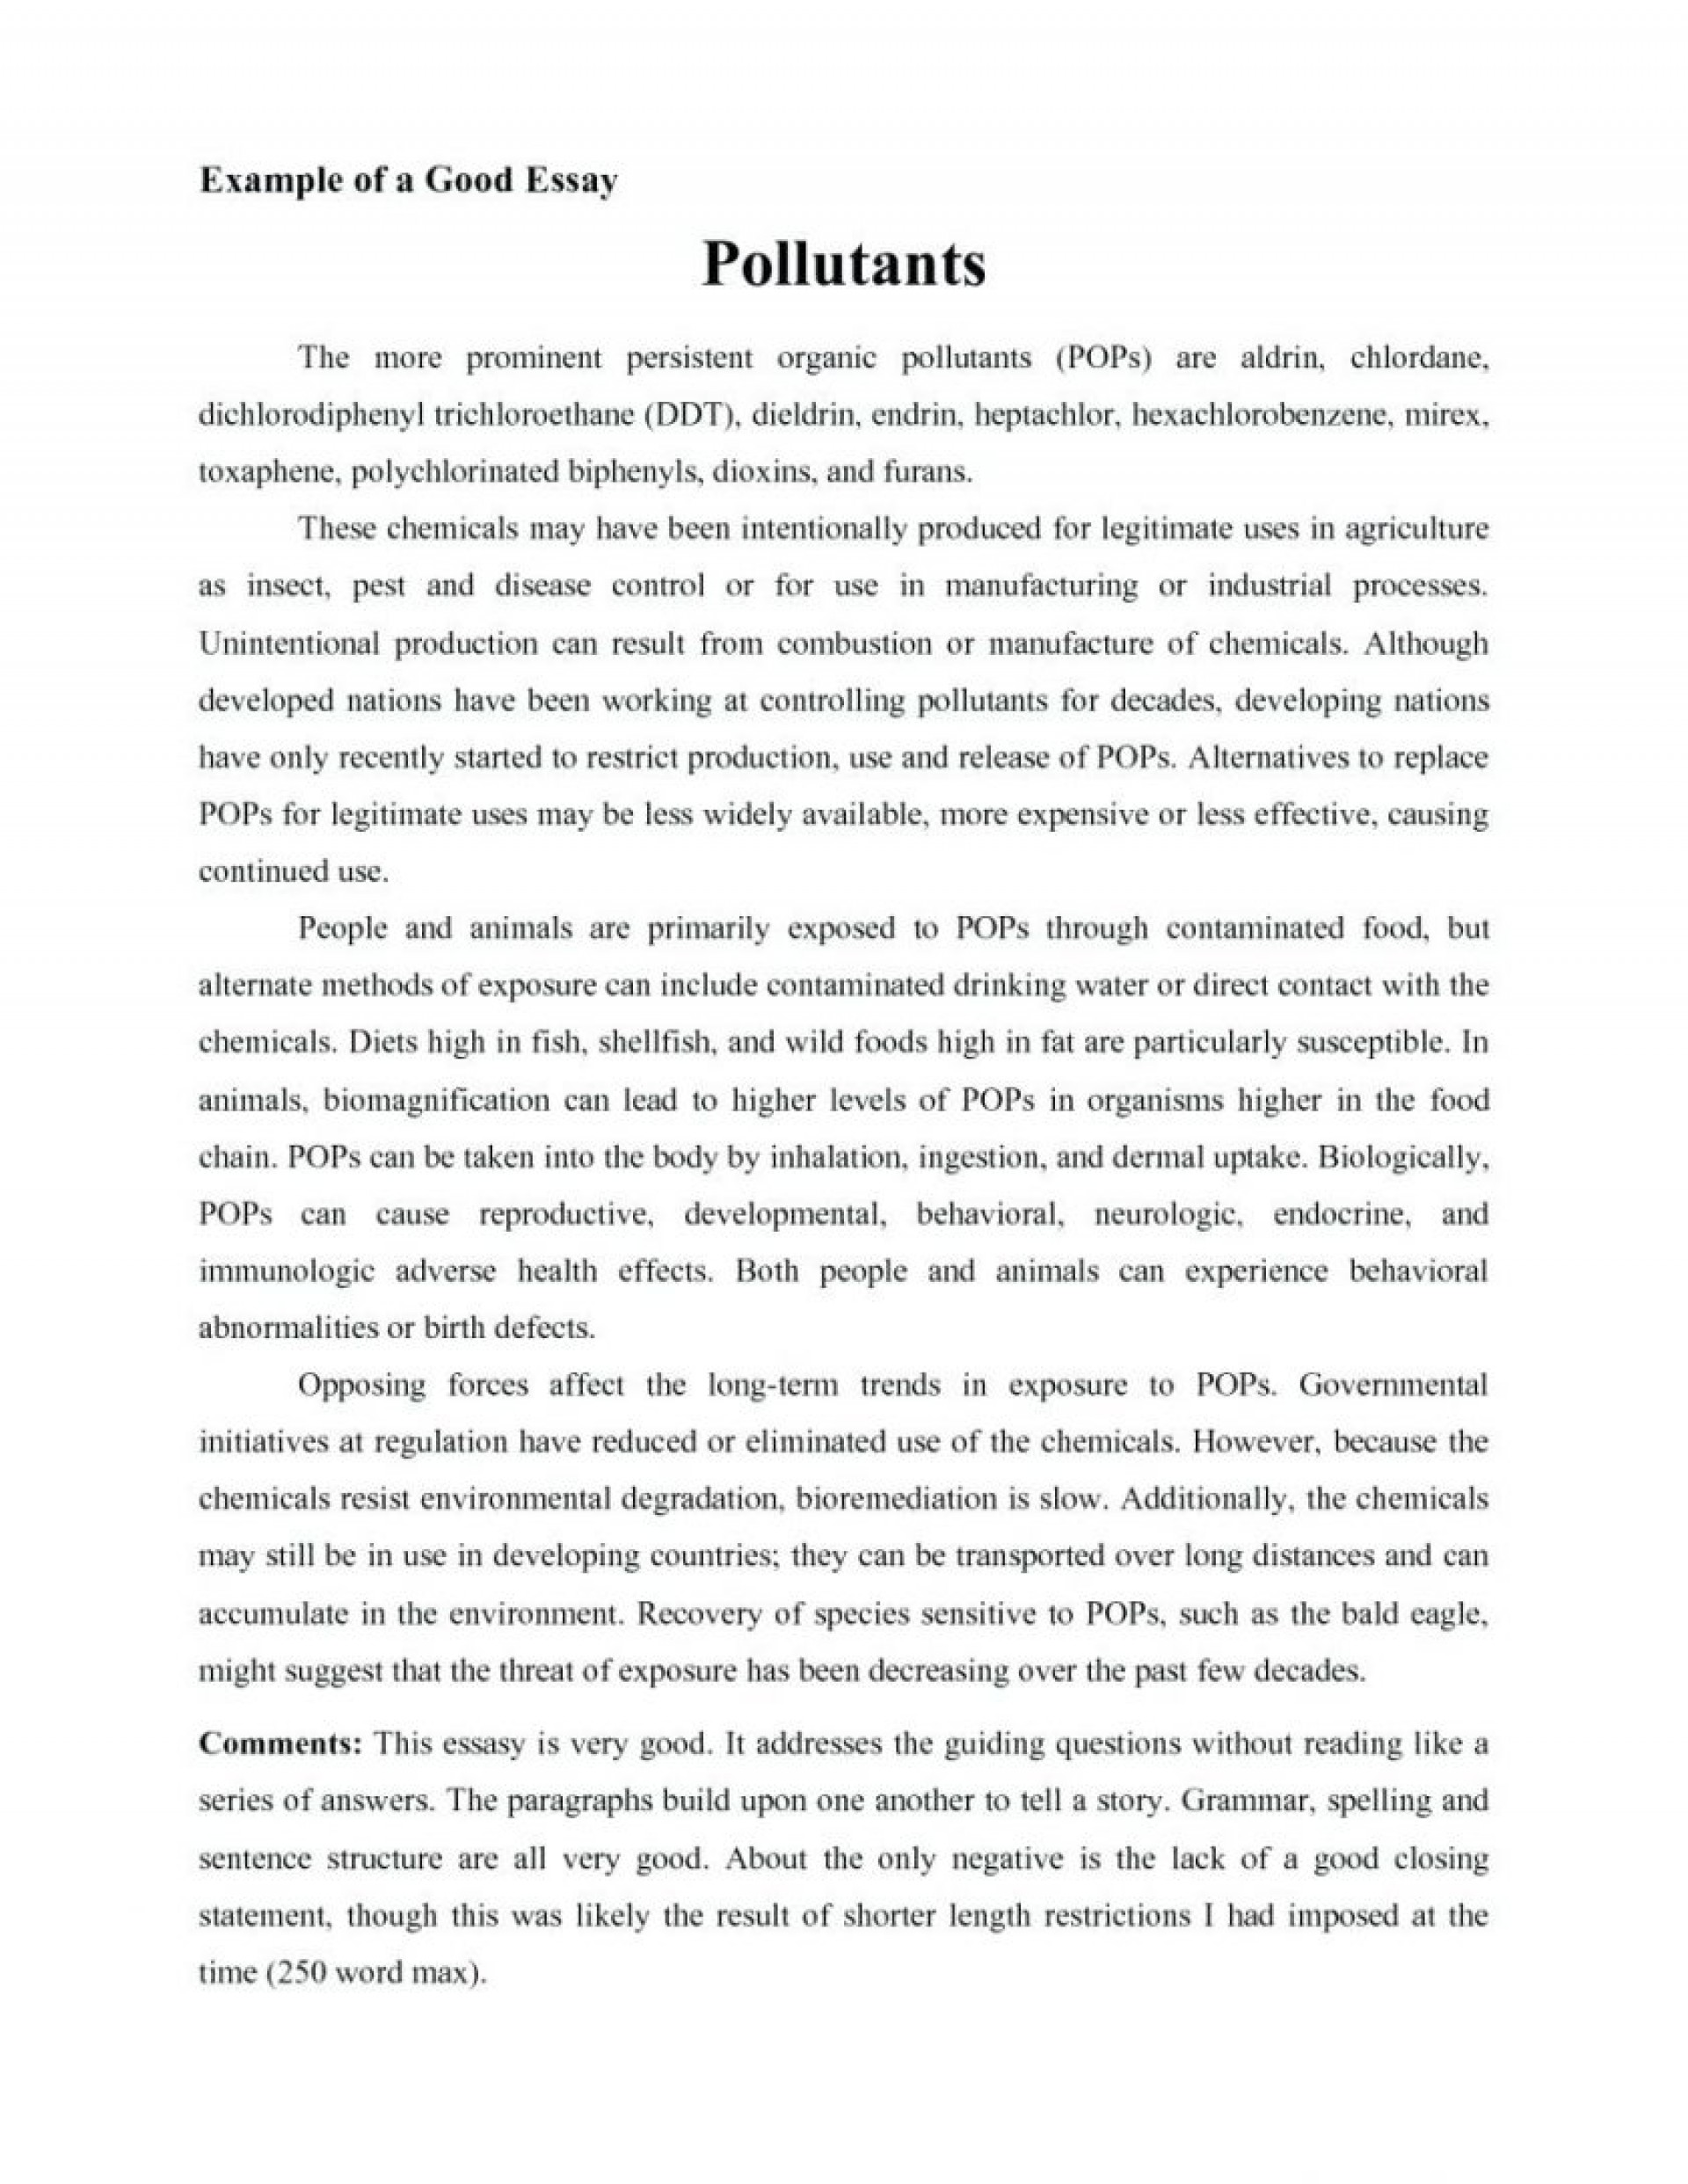 012 Research Paper Business Topics For Papers Examples Of Good Essay How To Write College Easy About Questio Descriptive Informative Synthesissuasive Narrative Marvelous Workplace Diversity Communication 1920